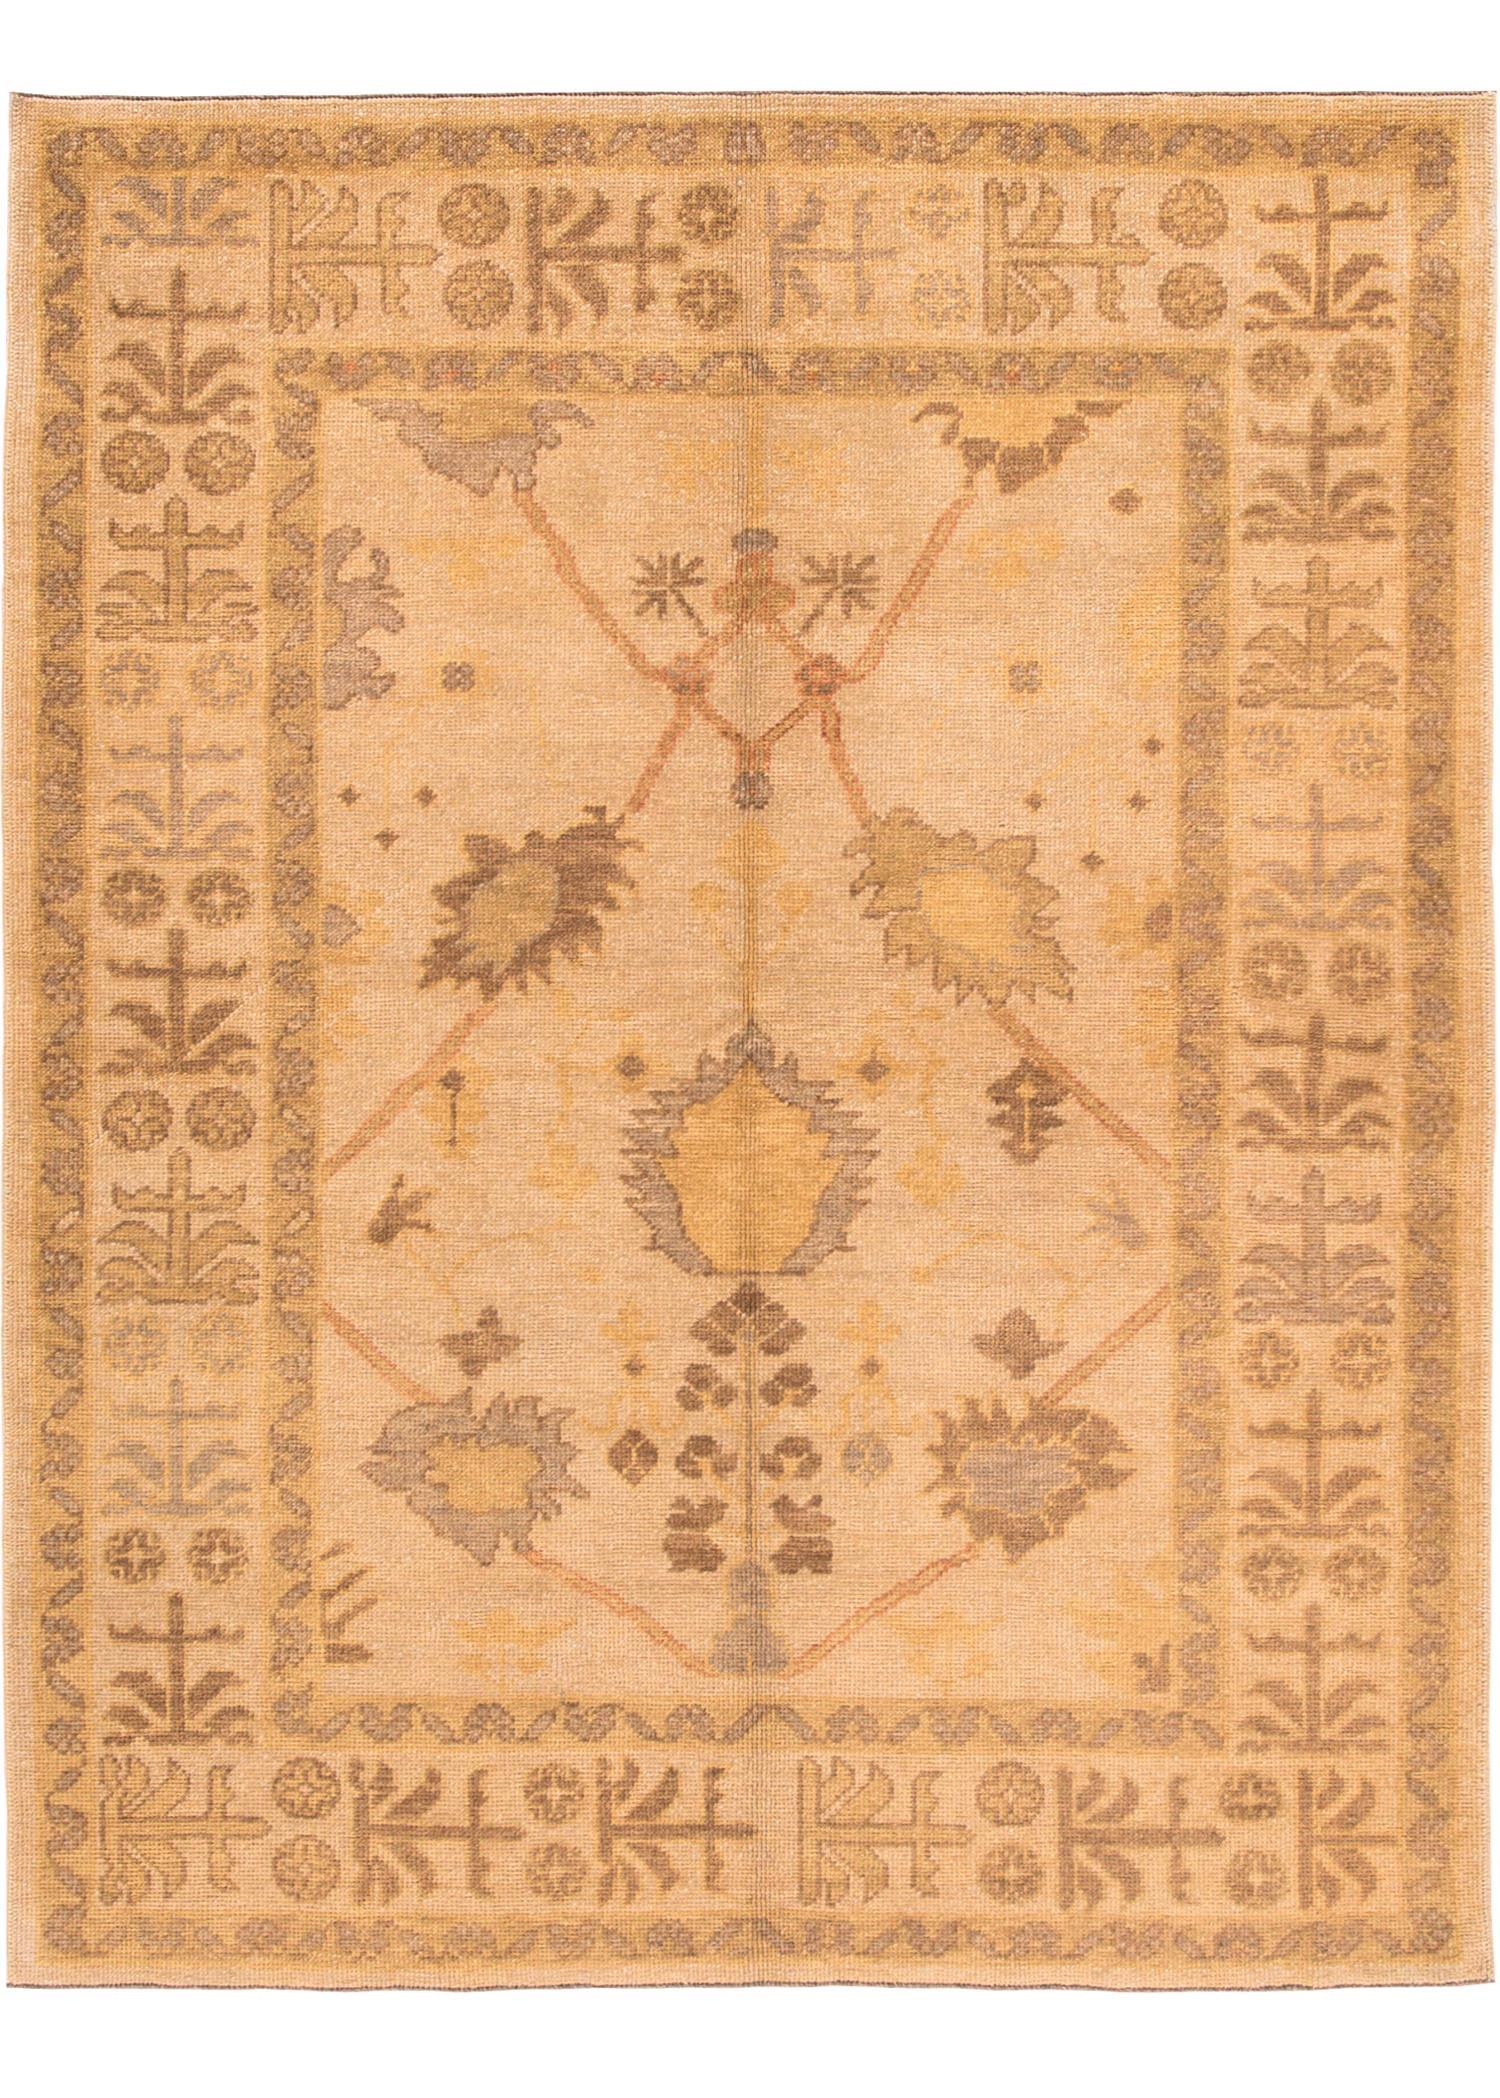 Modern Turkish Rug, 6X8